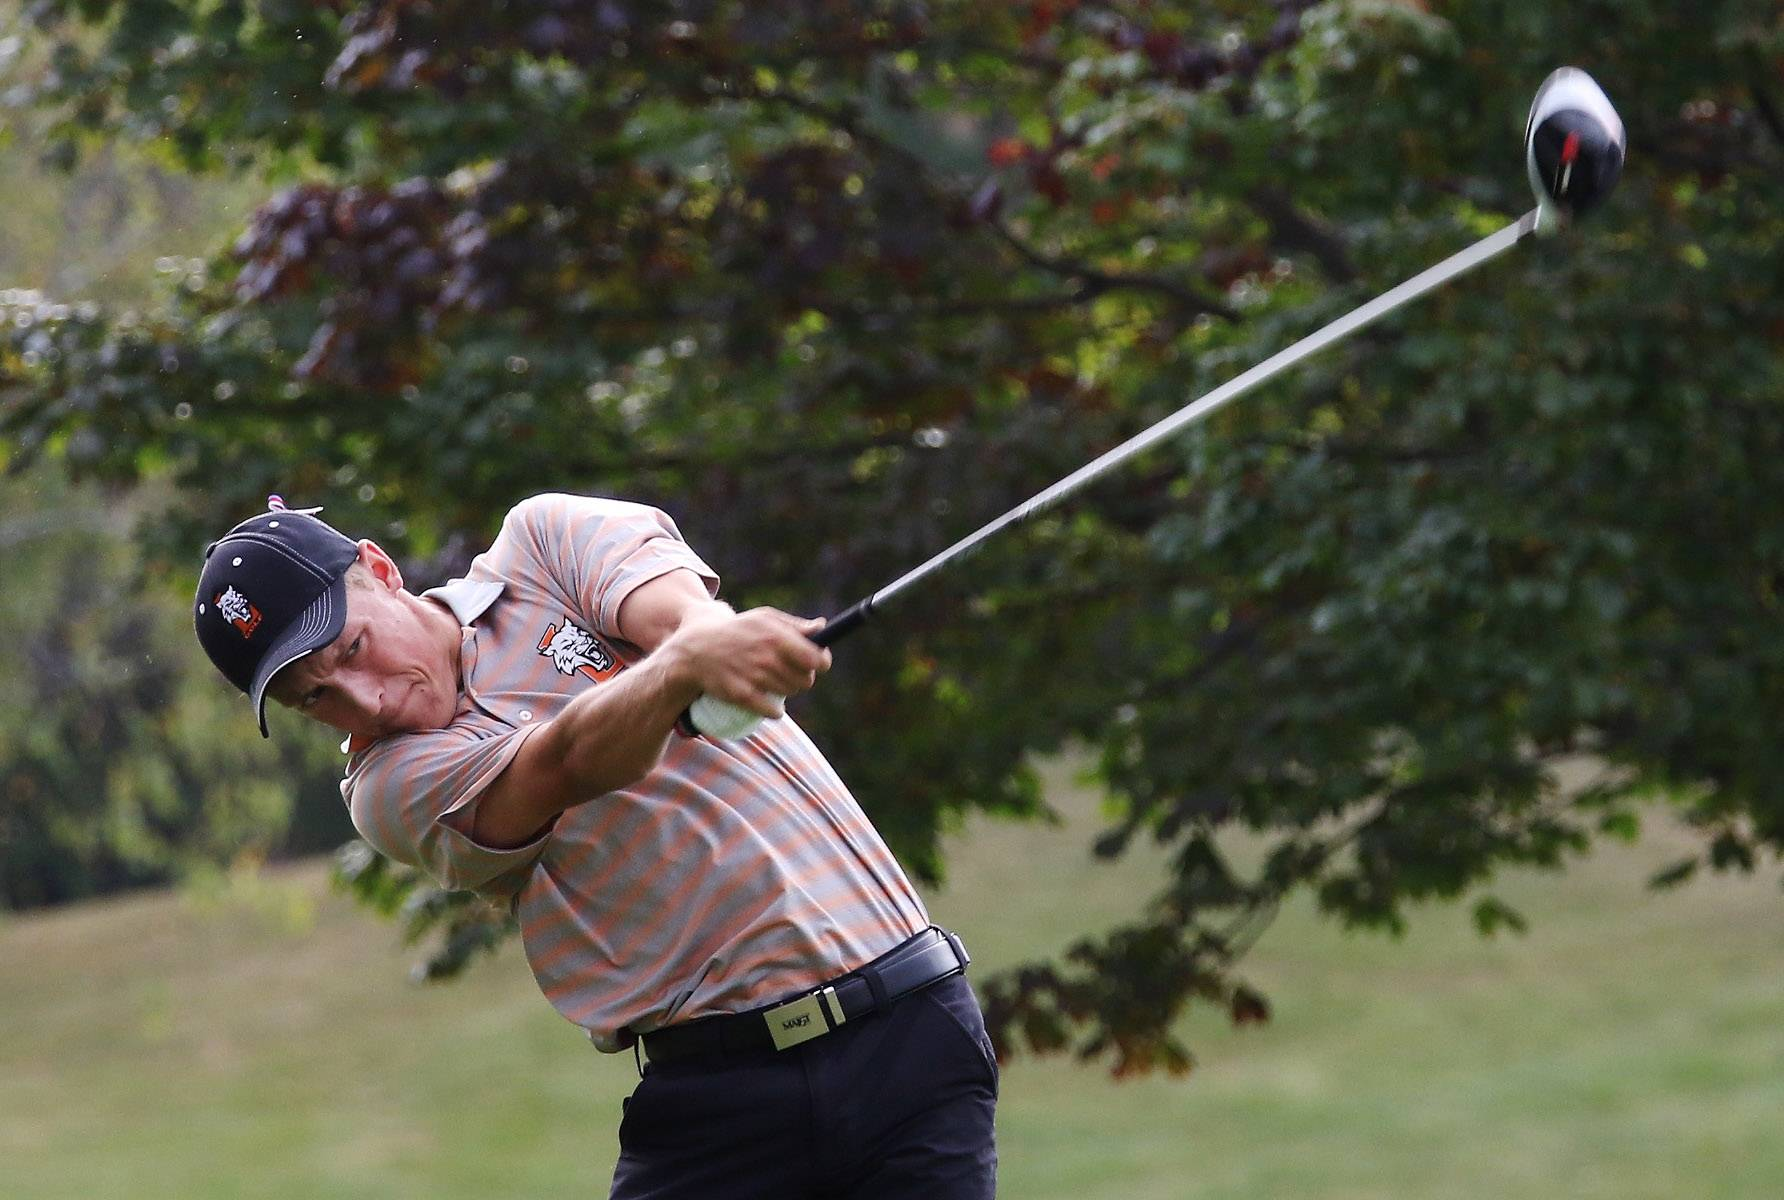 Libertyville's Mitch Kenston tees off on the second hole during the North Suburban Conference tournament Tuesday at Willow Glen Golf Course in North Chicago.